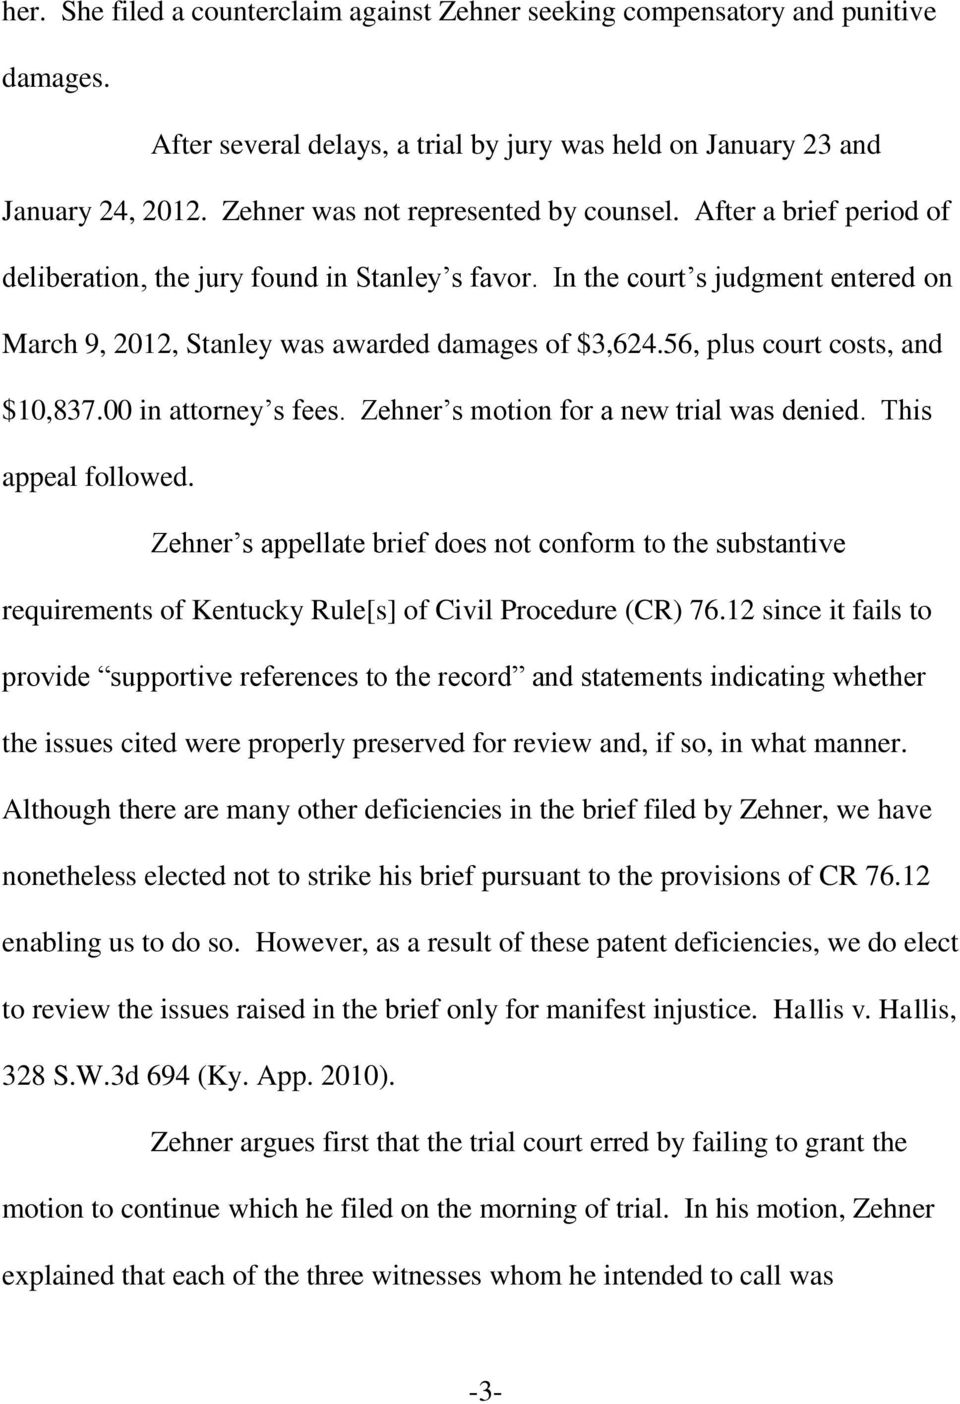 56, plus court costs, and $10,837.00 in attorney s fees. Zehner s motion for a new trial was denied. This appeal followed.